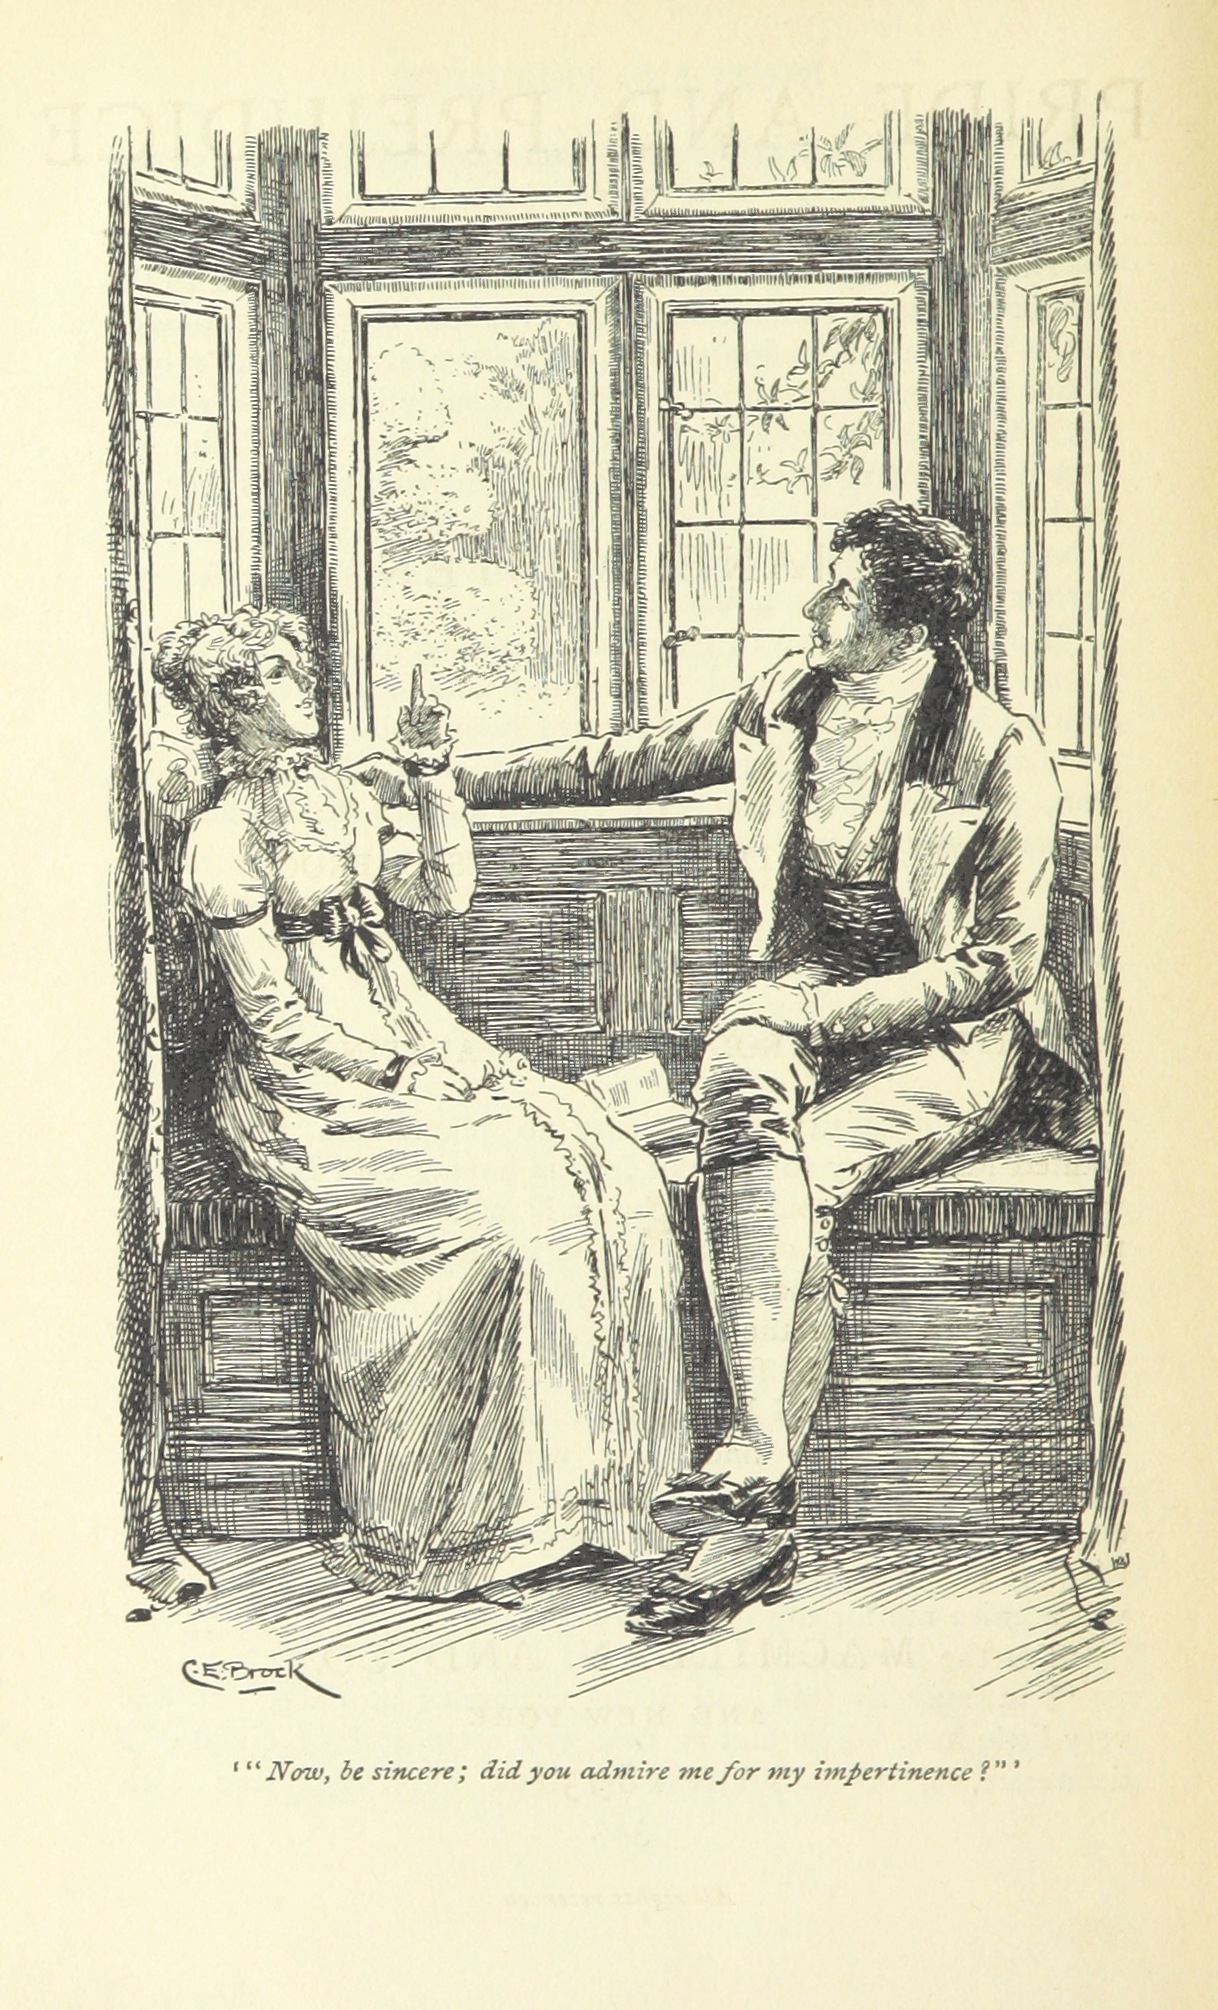 Pride and Prejudice, illustr. by C.E.Brock: Be sincere